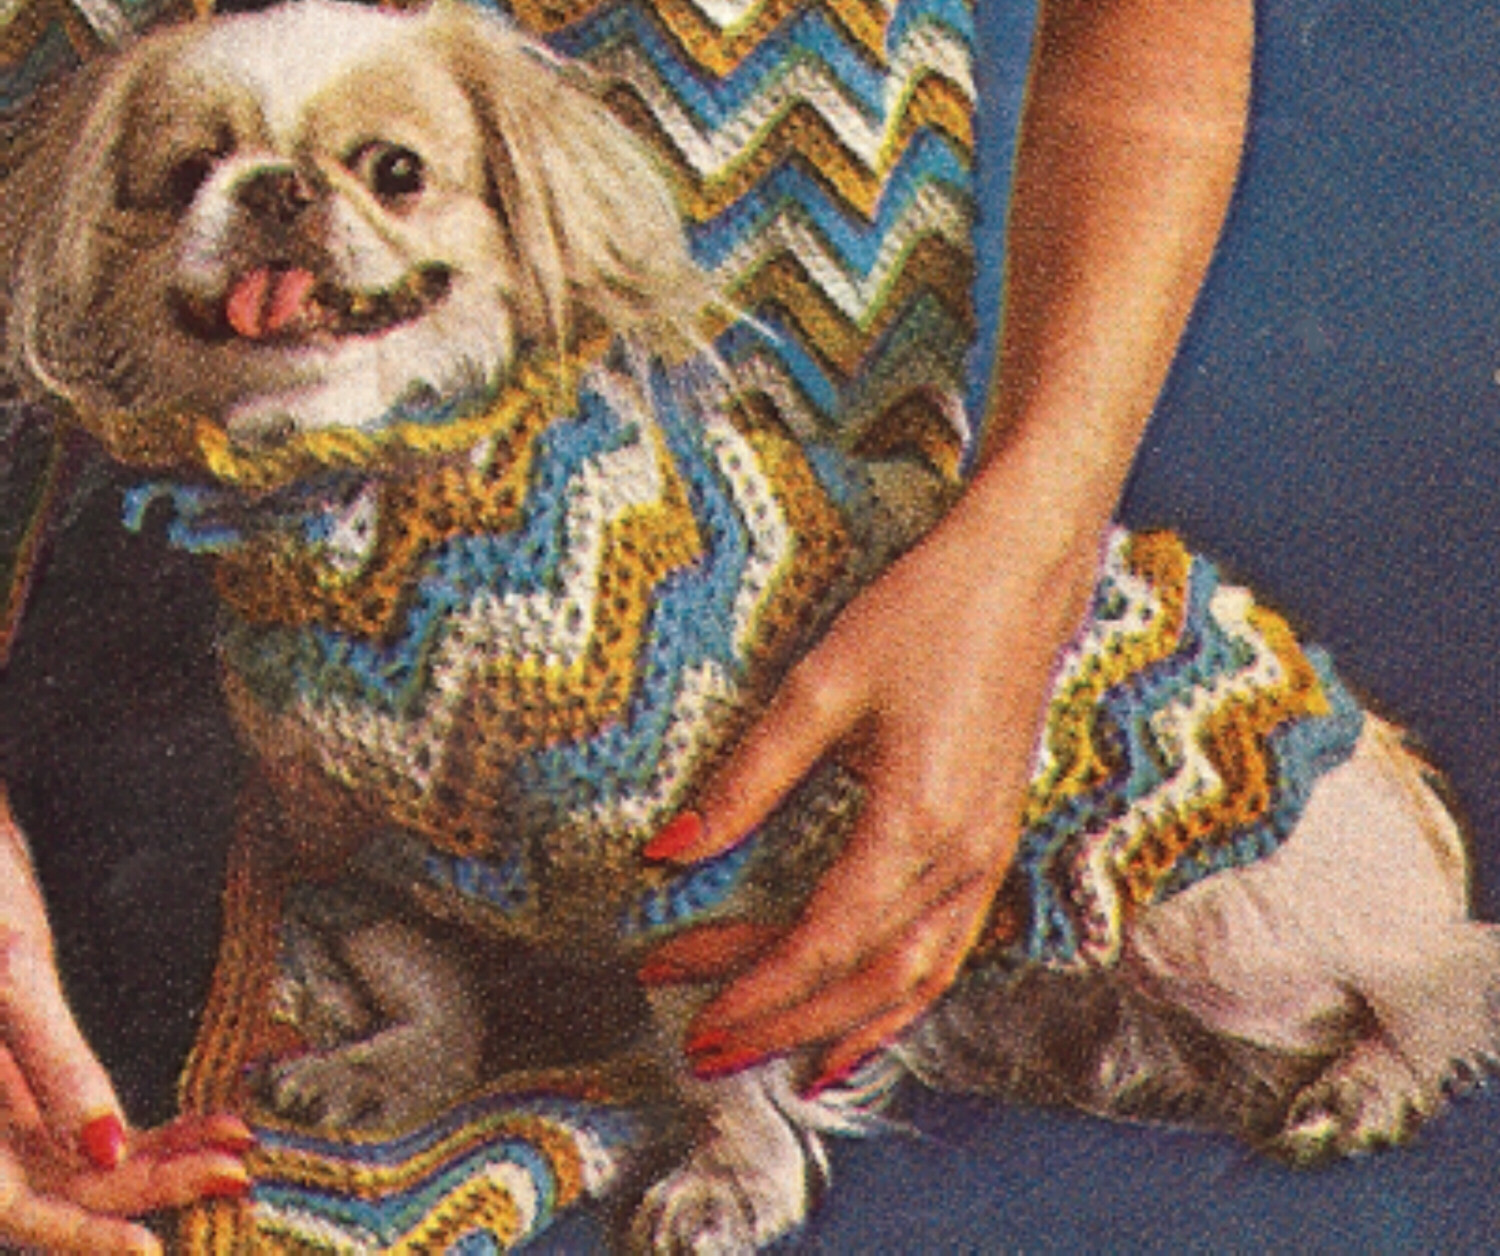 Crochet Dog Sweater with Legs Elegant Vintage Crochet Pattern to Make Dog Sweater Coat Jibber Of Gorgeous 40 Images Crochet Dog Sweater with Legs